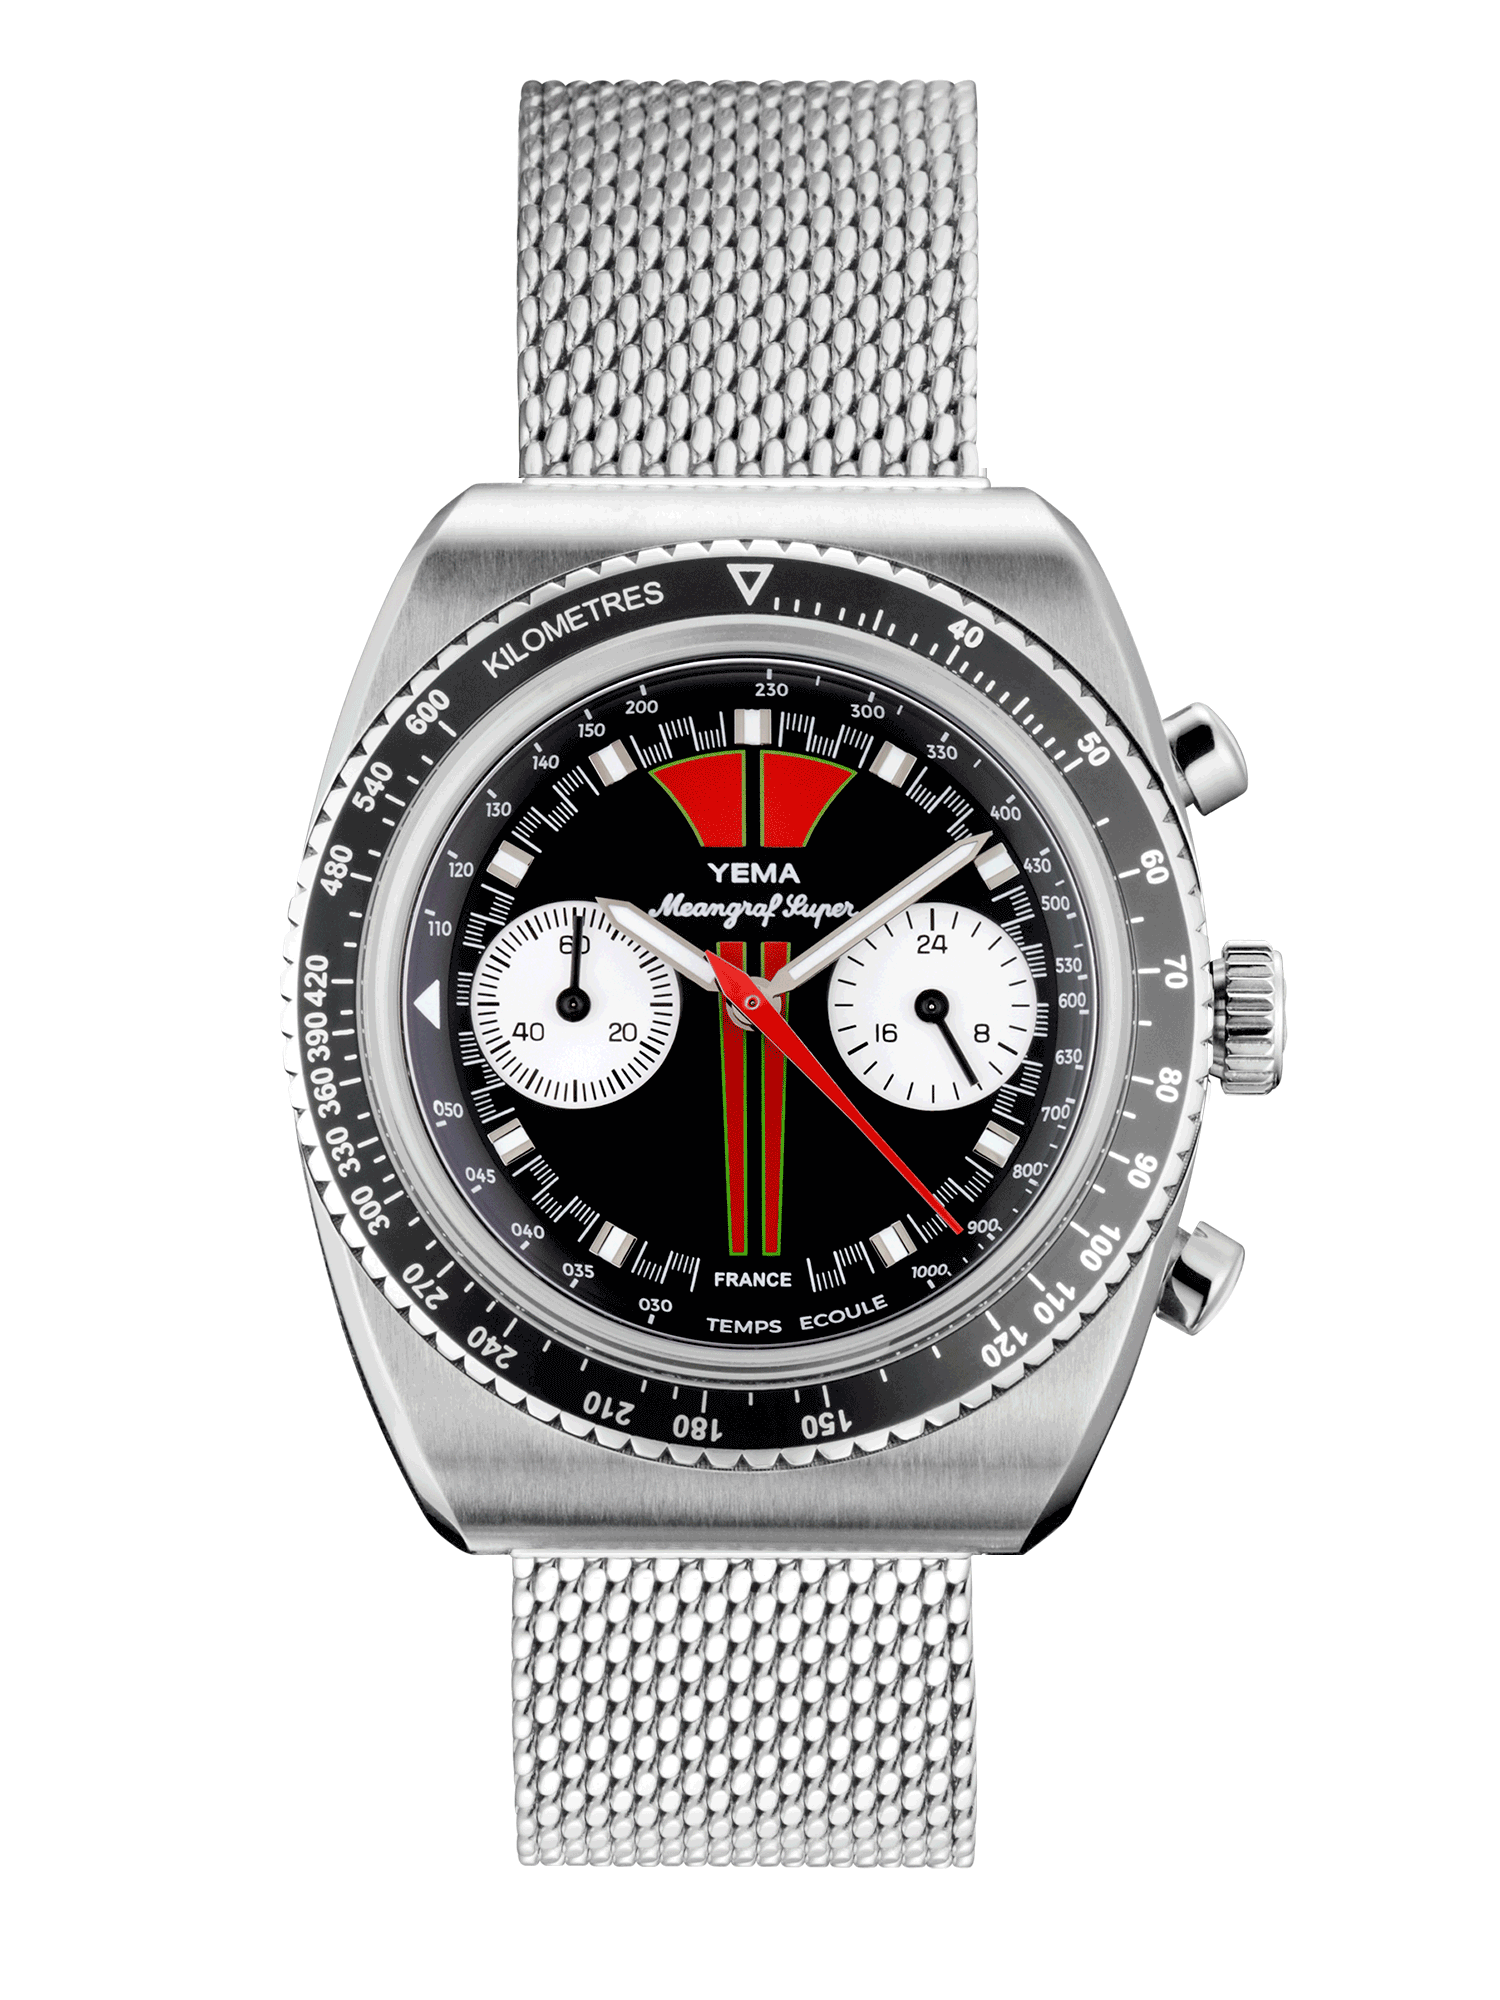 YEMA MEANGRAF SUPER R70, red & black dial, white sub-registers.